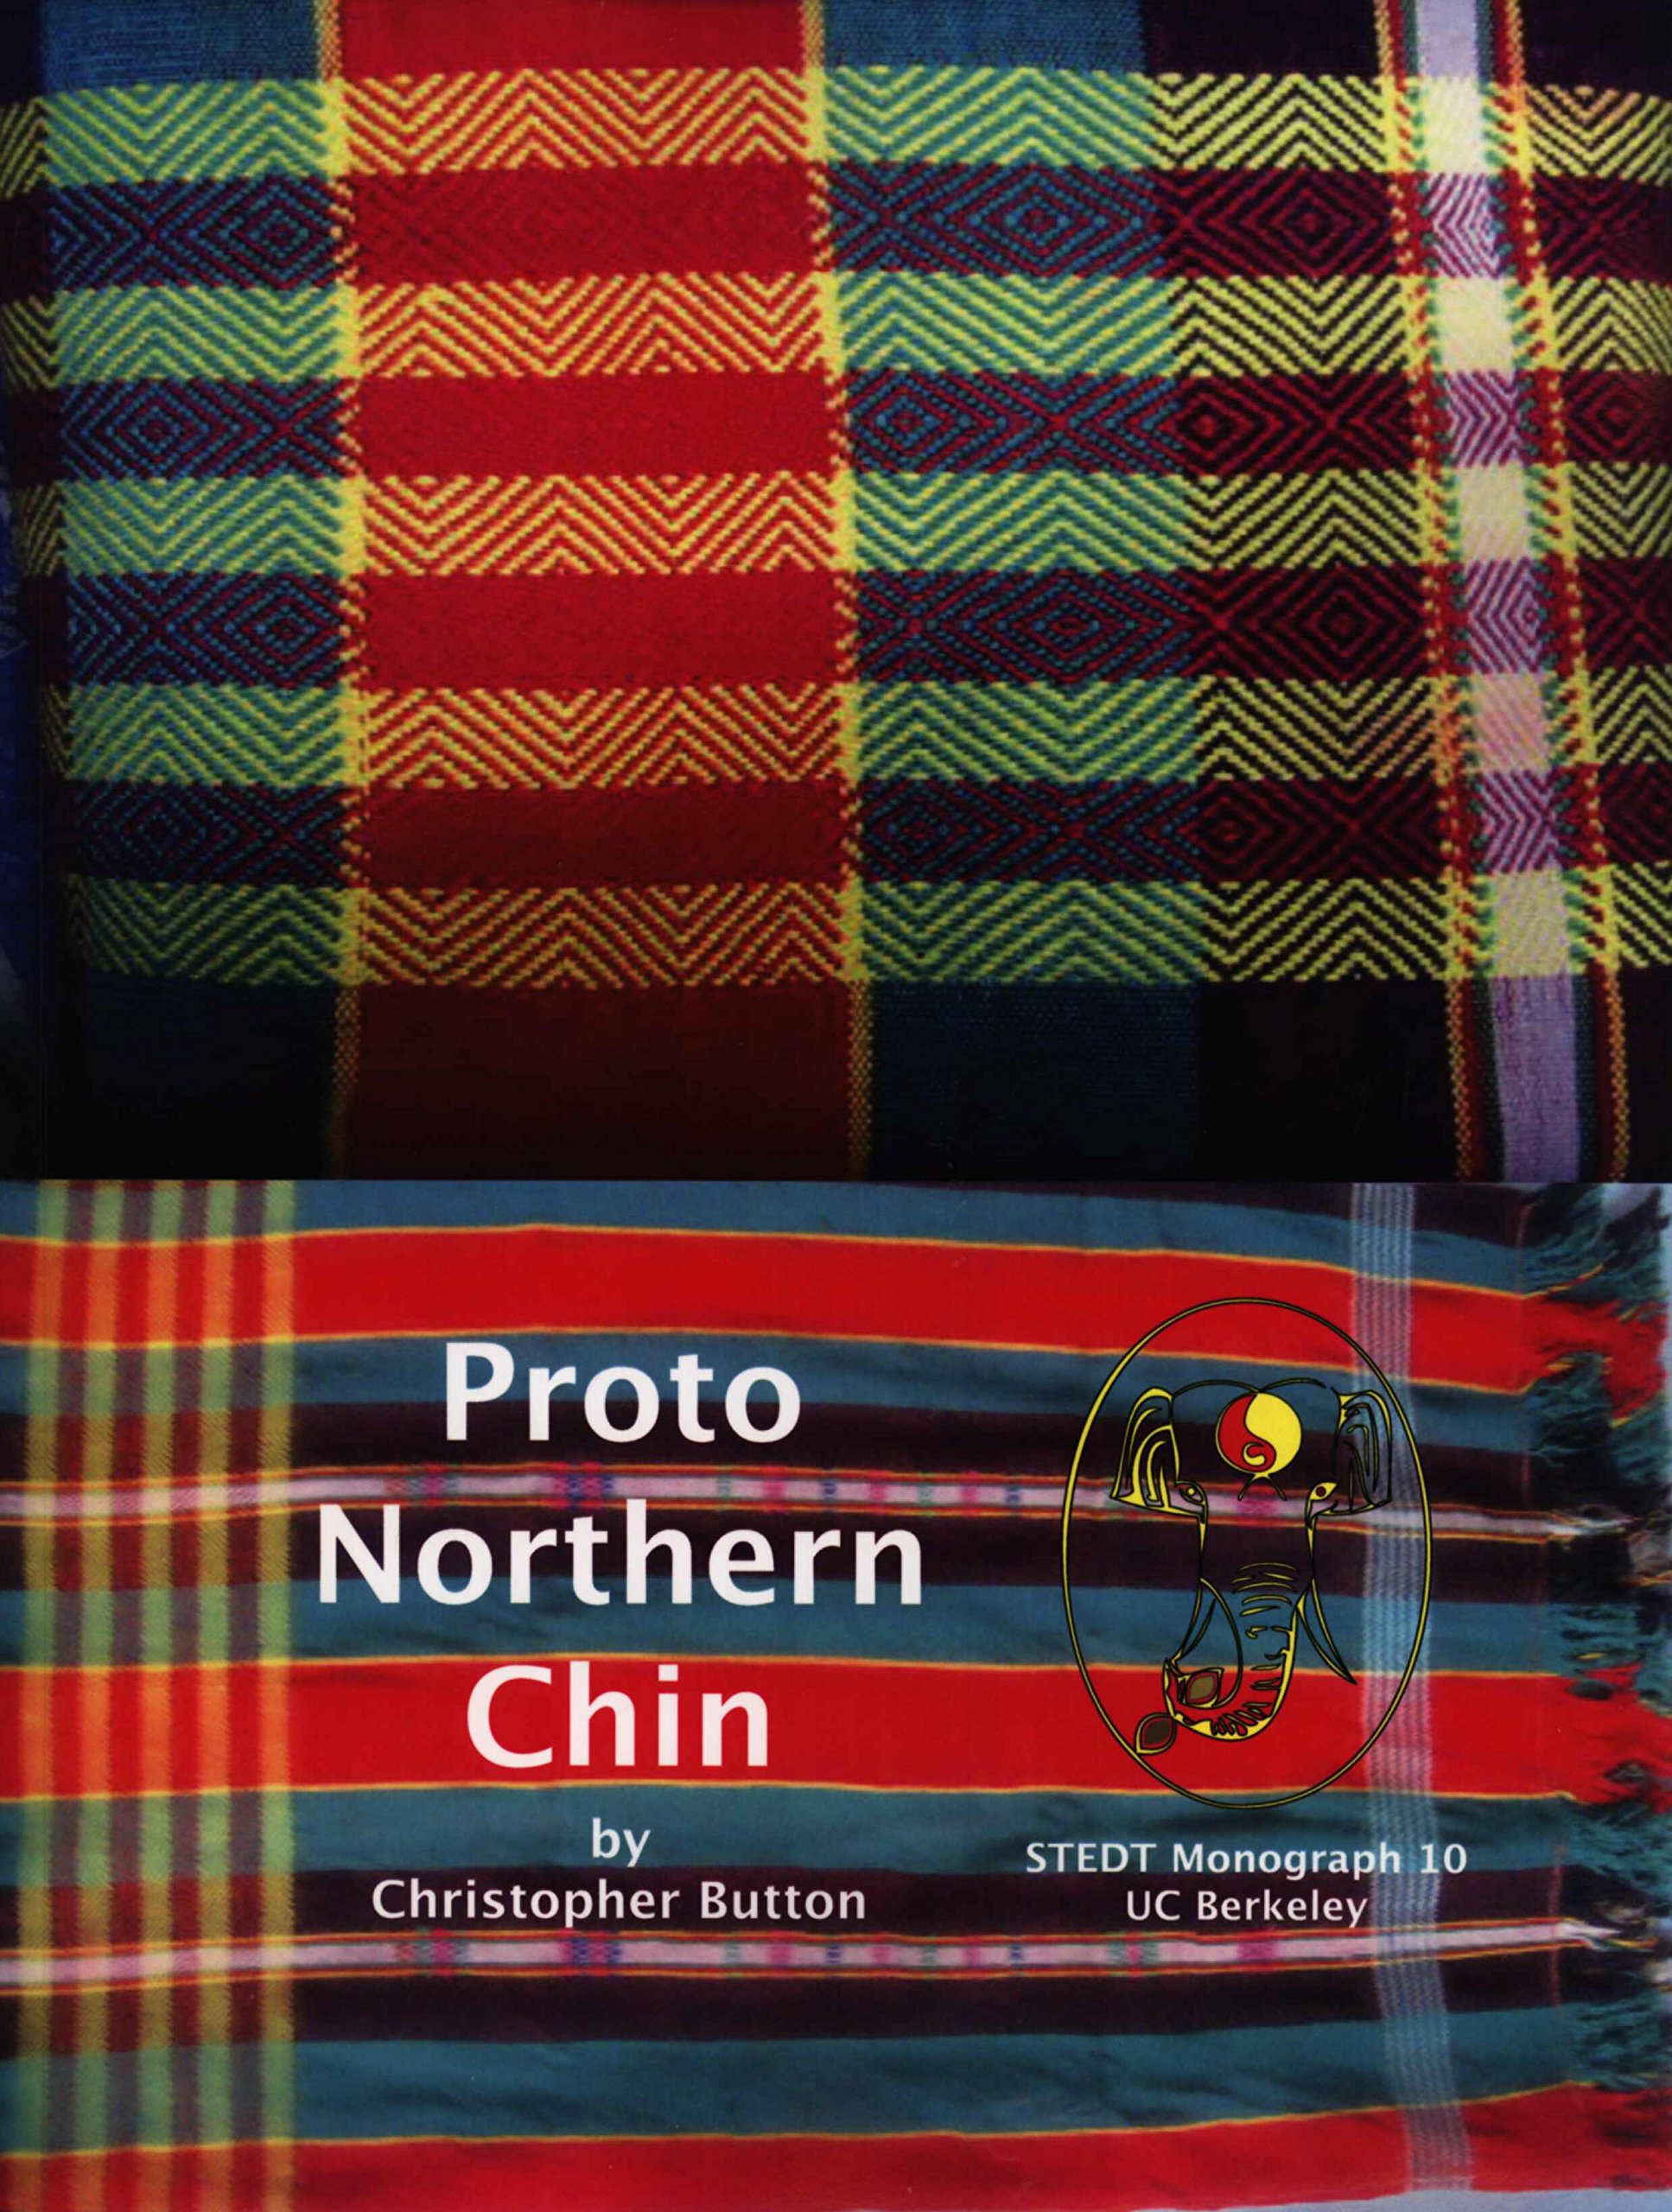 Proto Northern Chin: Christopher Button: 9780944613498